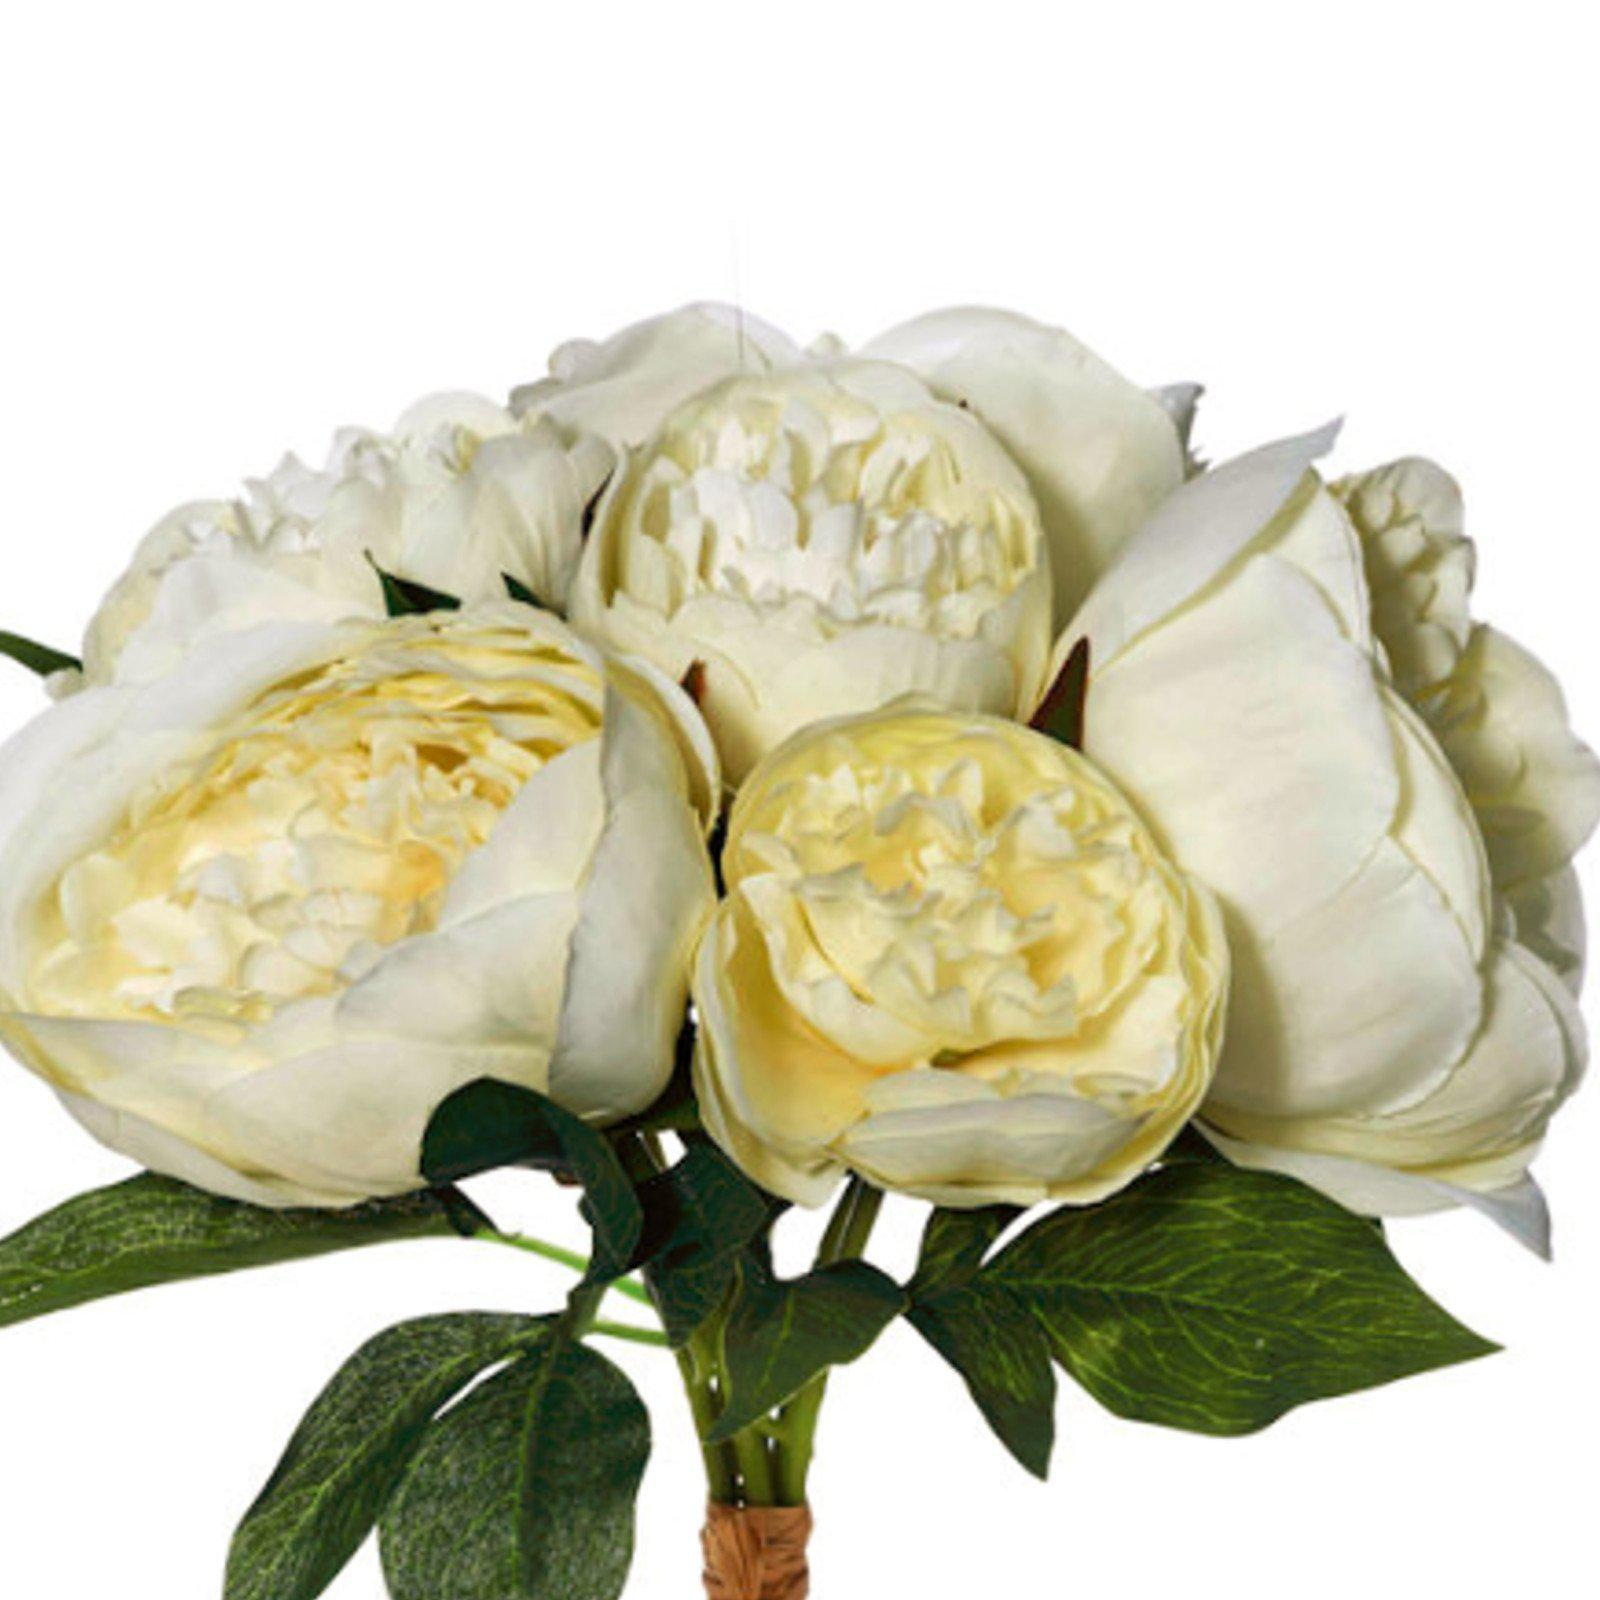 White Peony Bouquet - Artificial Flower Arrangement-artificial flowers and plants-Chef's Quality Cookware